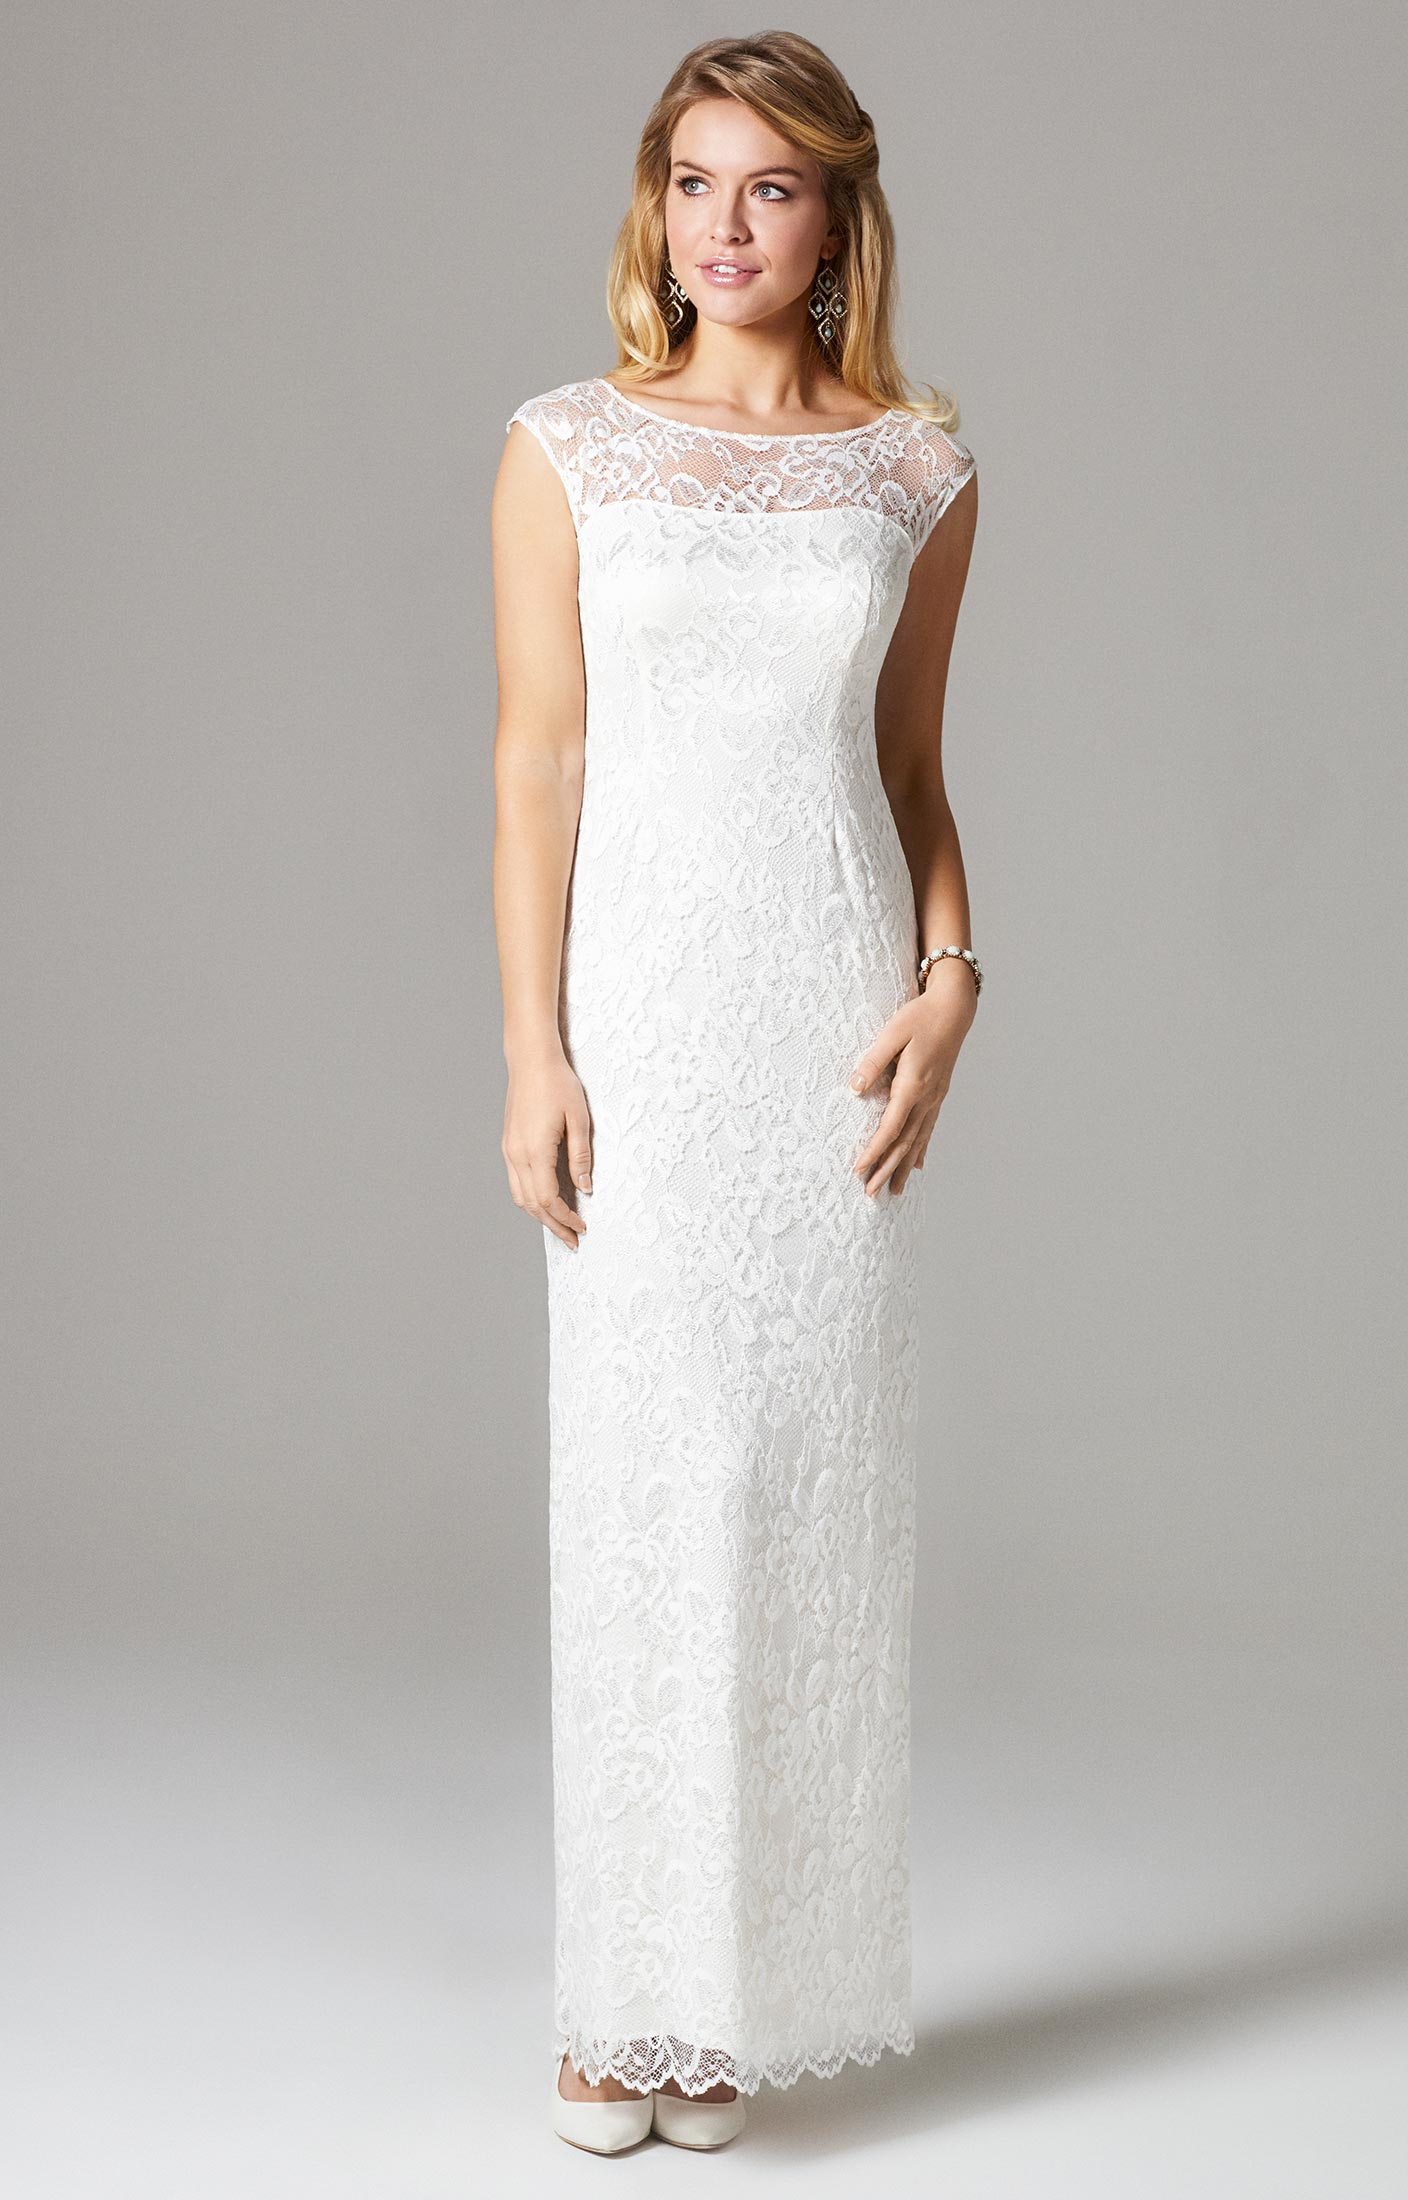 Amber Wedding Gown Long Ivory - Evening Dresses, Occasion Wear and Wedding Dresses by Alie Street.